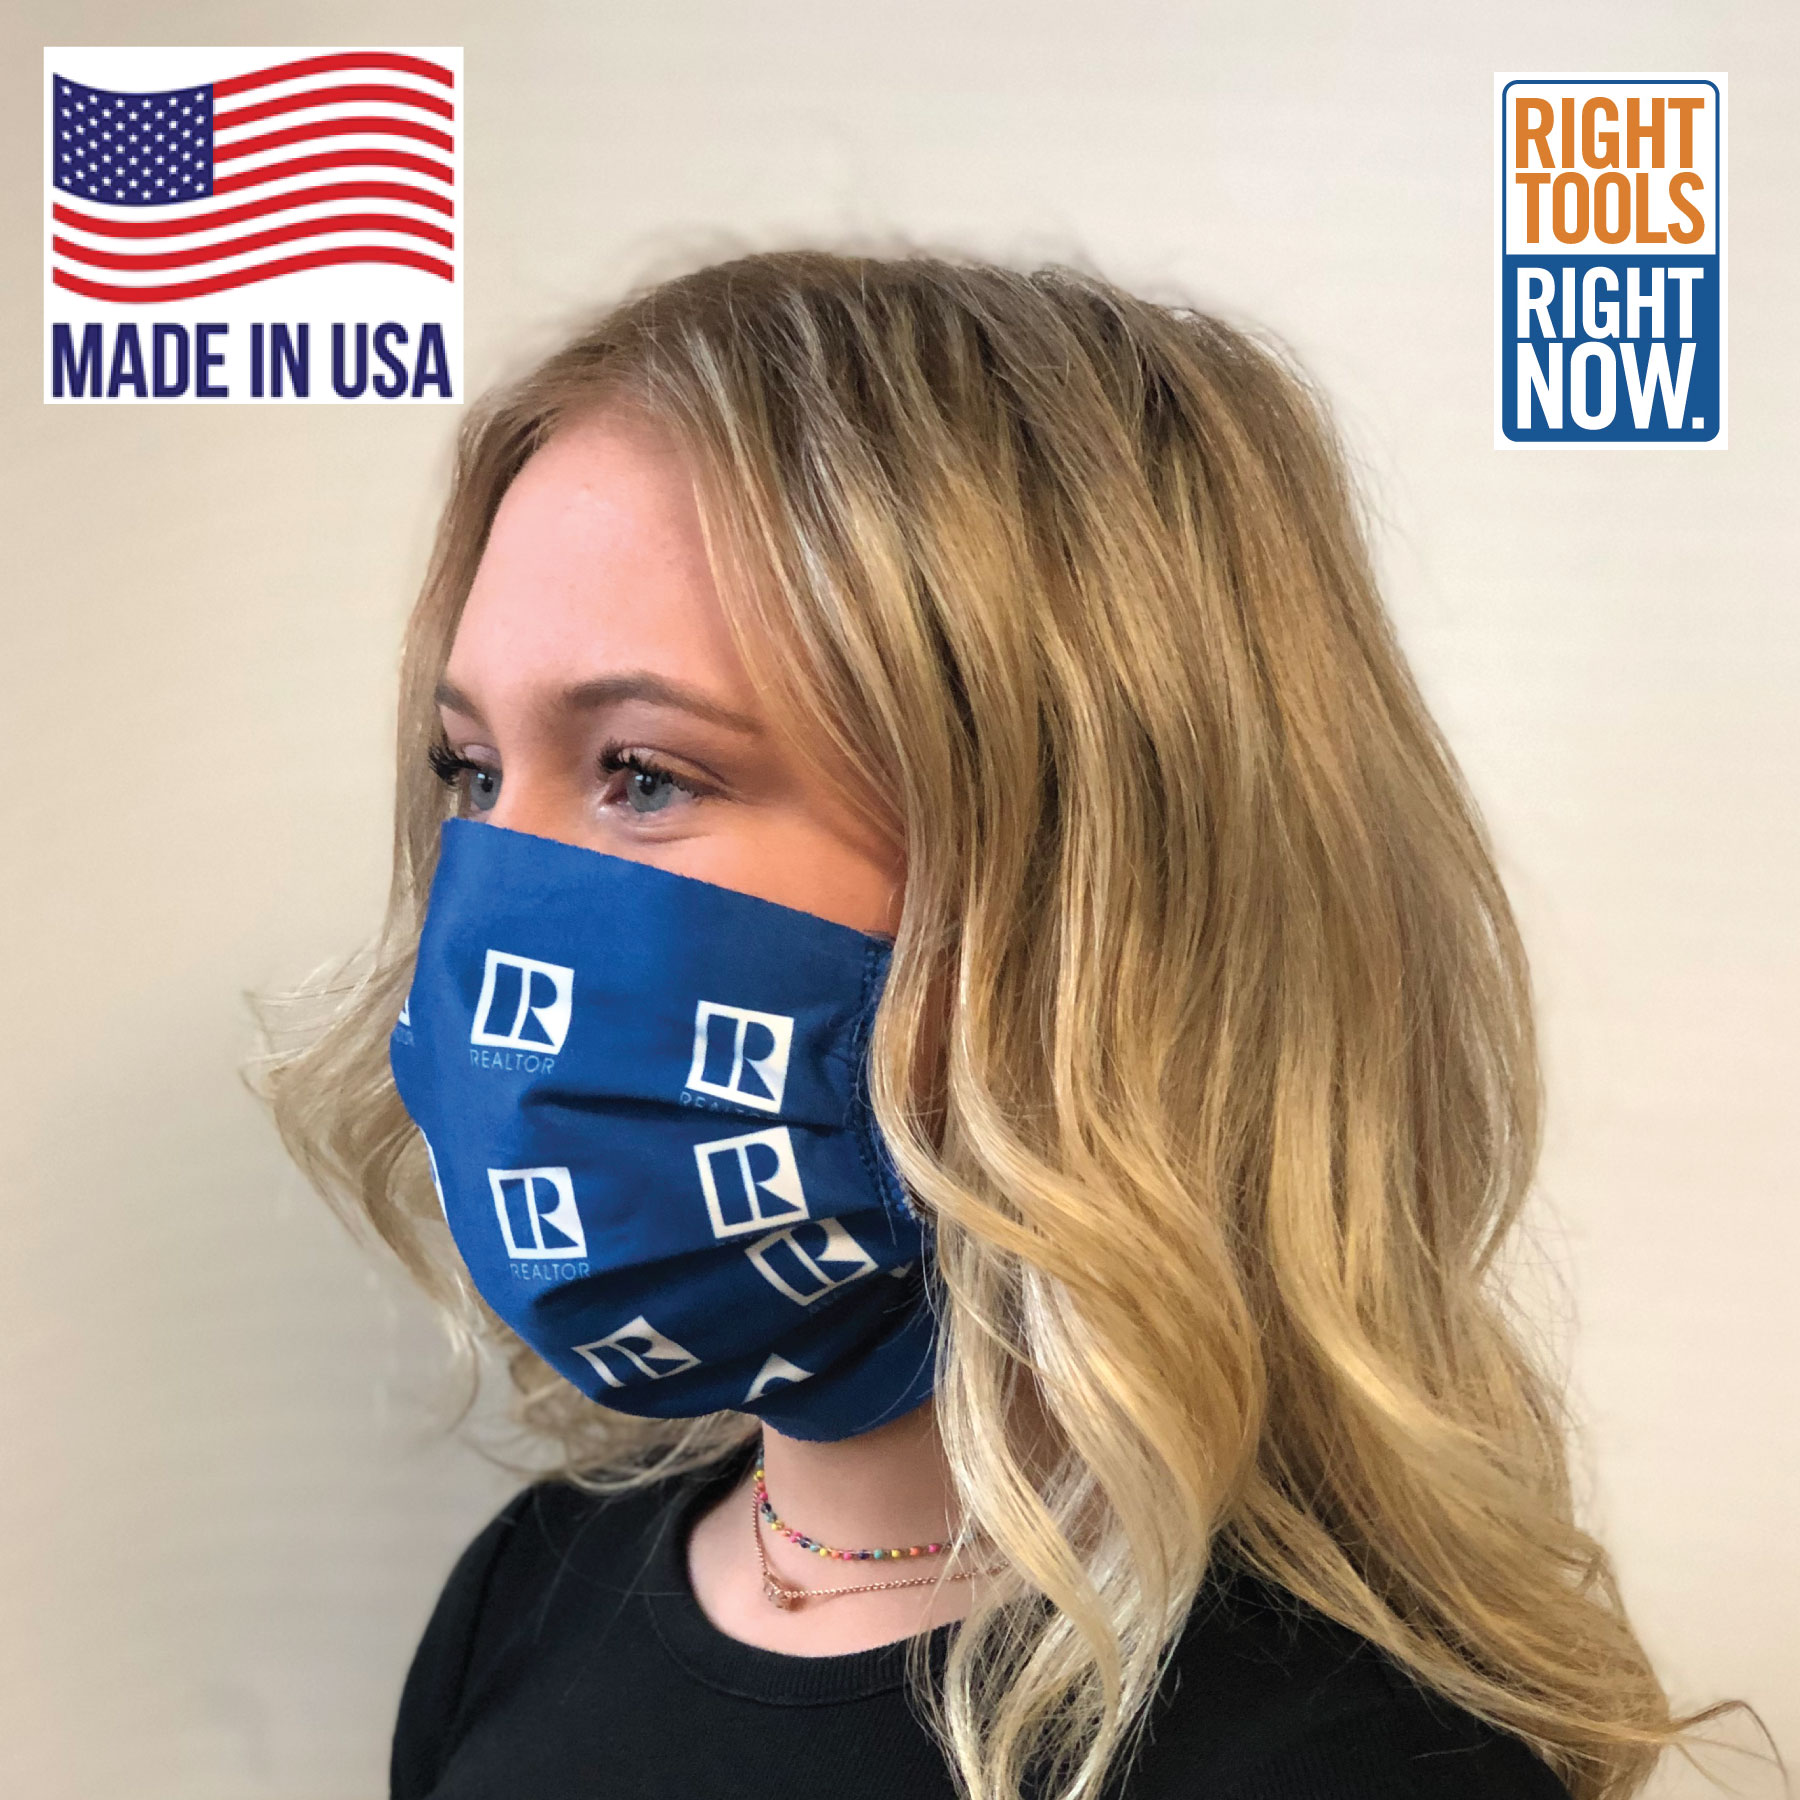 In Stock: Microfiber Face Mask with the REALTOR® Logo Faces,Masks,Shields,COVID,COVID-19,SARS,Virus,Viruses,Coughs,Safety